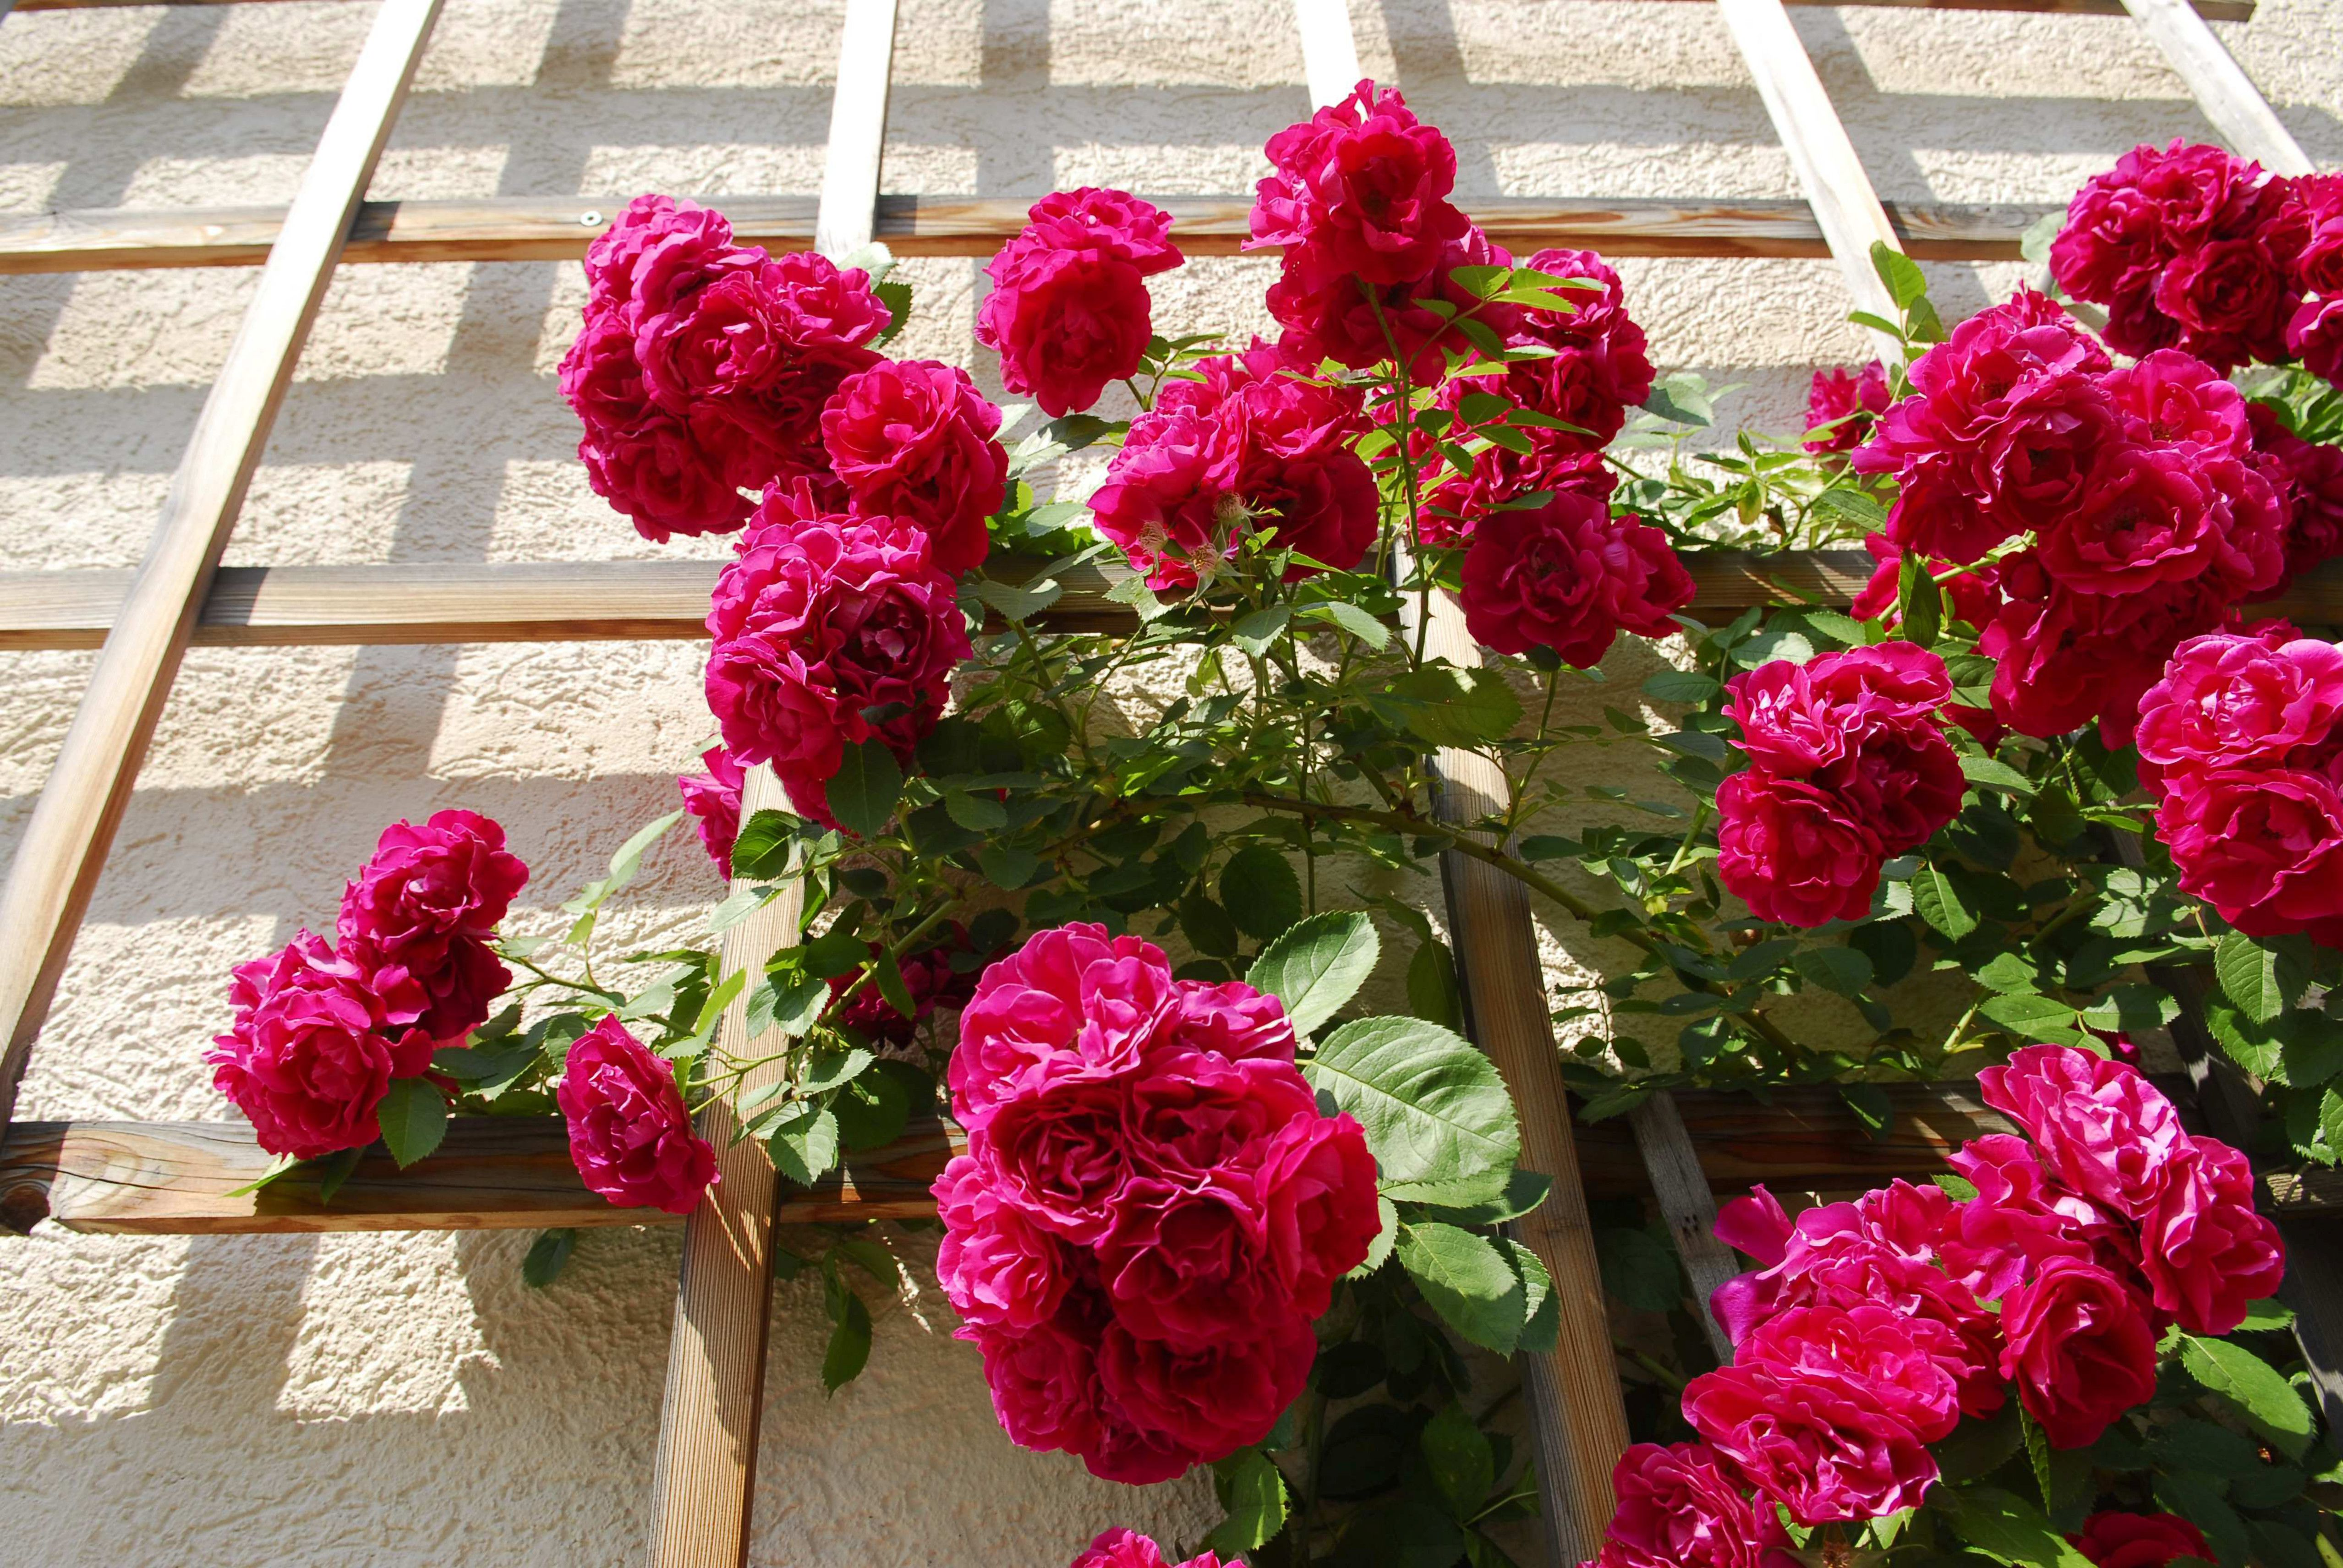 Red Rambler Roses (Rosa) on a grid at a house wall